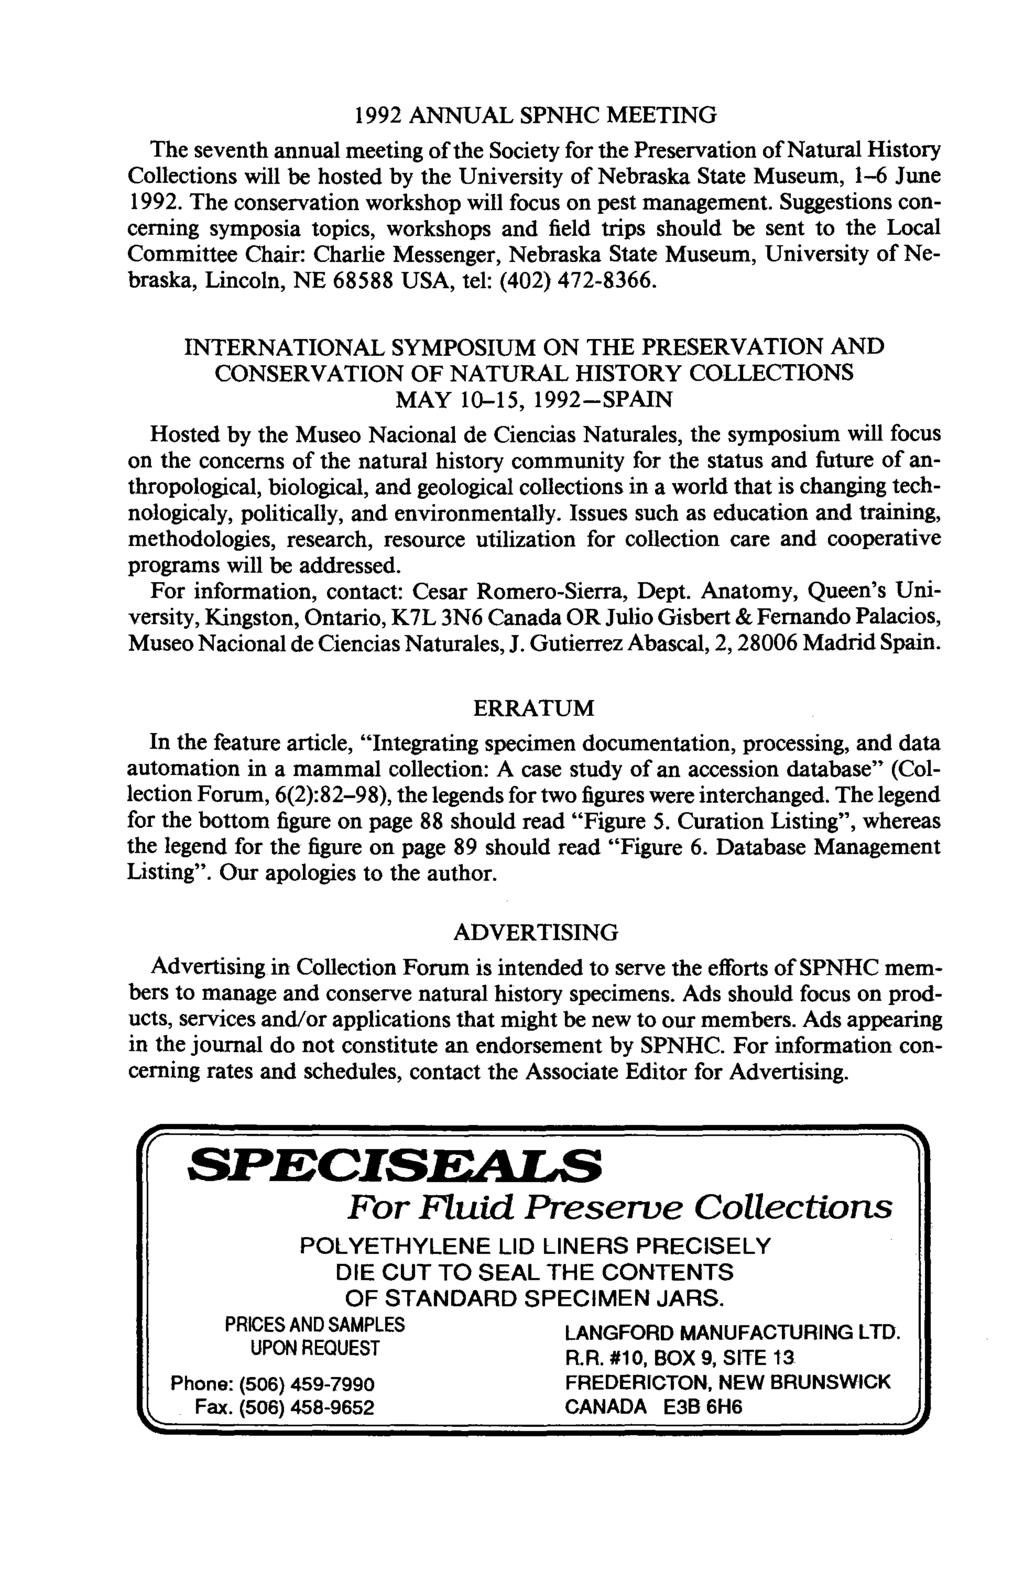 1992 ANNUAL SPNHC MEETING The seventh annual meeting of the Society for the Preservation of Natural History Collections will be hosted by the University of Nebraska State Museum, 1-6 June 1992.